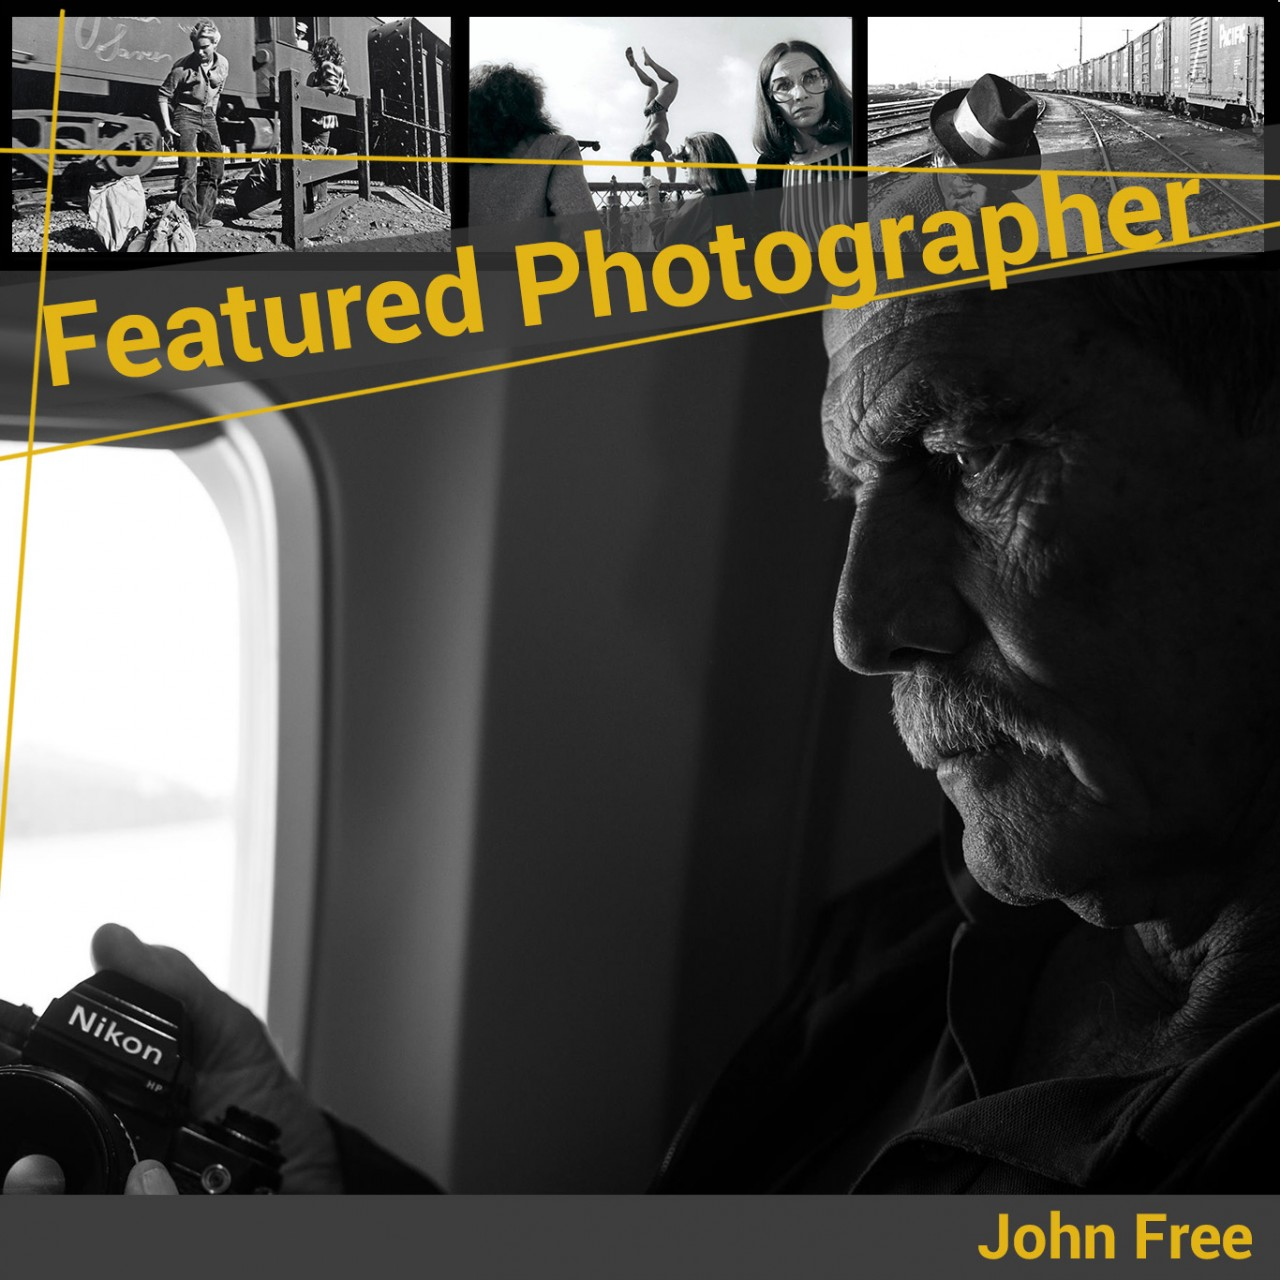 Templatet Featured PhotographerJF